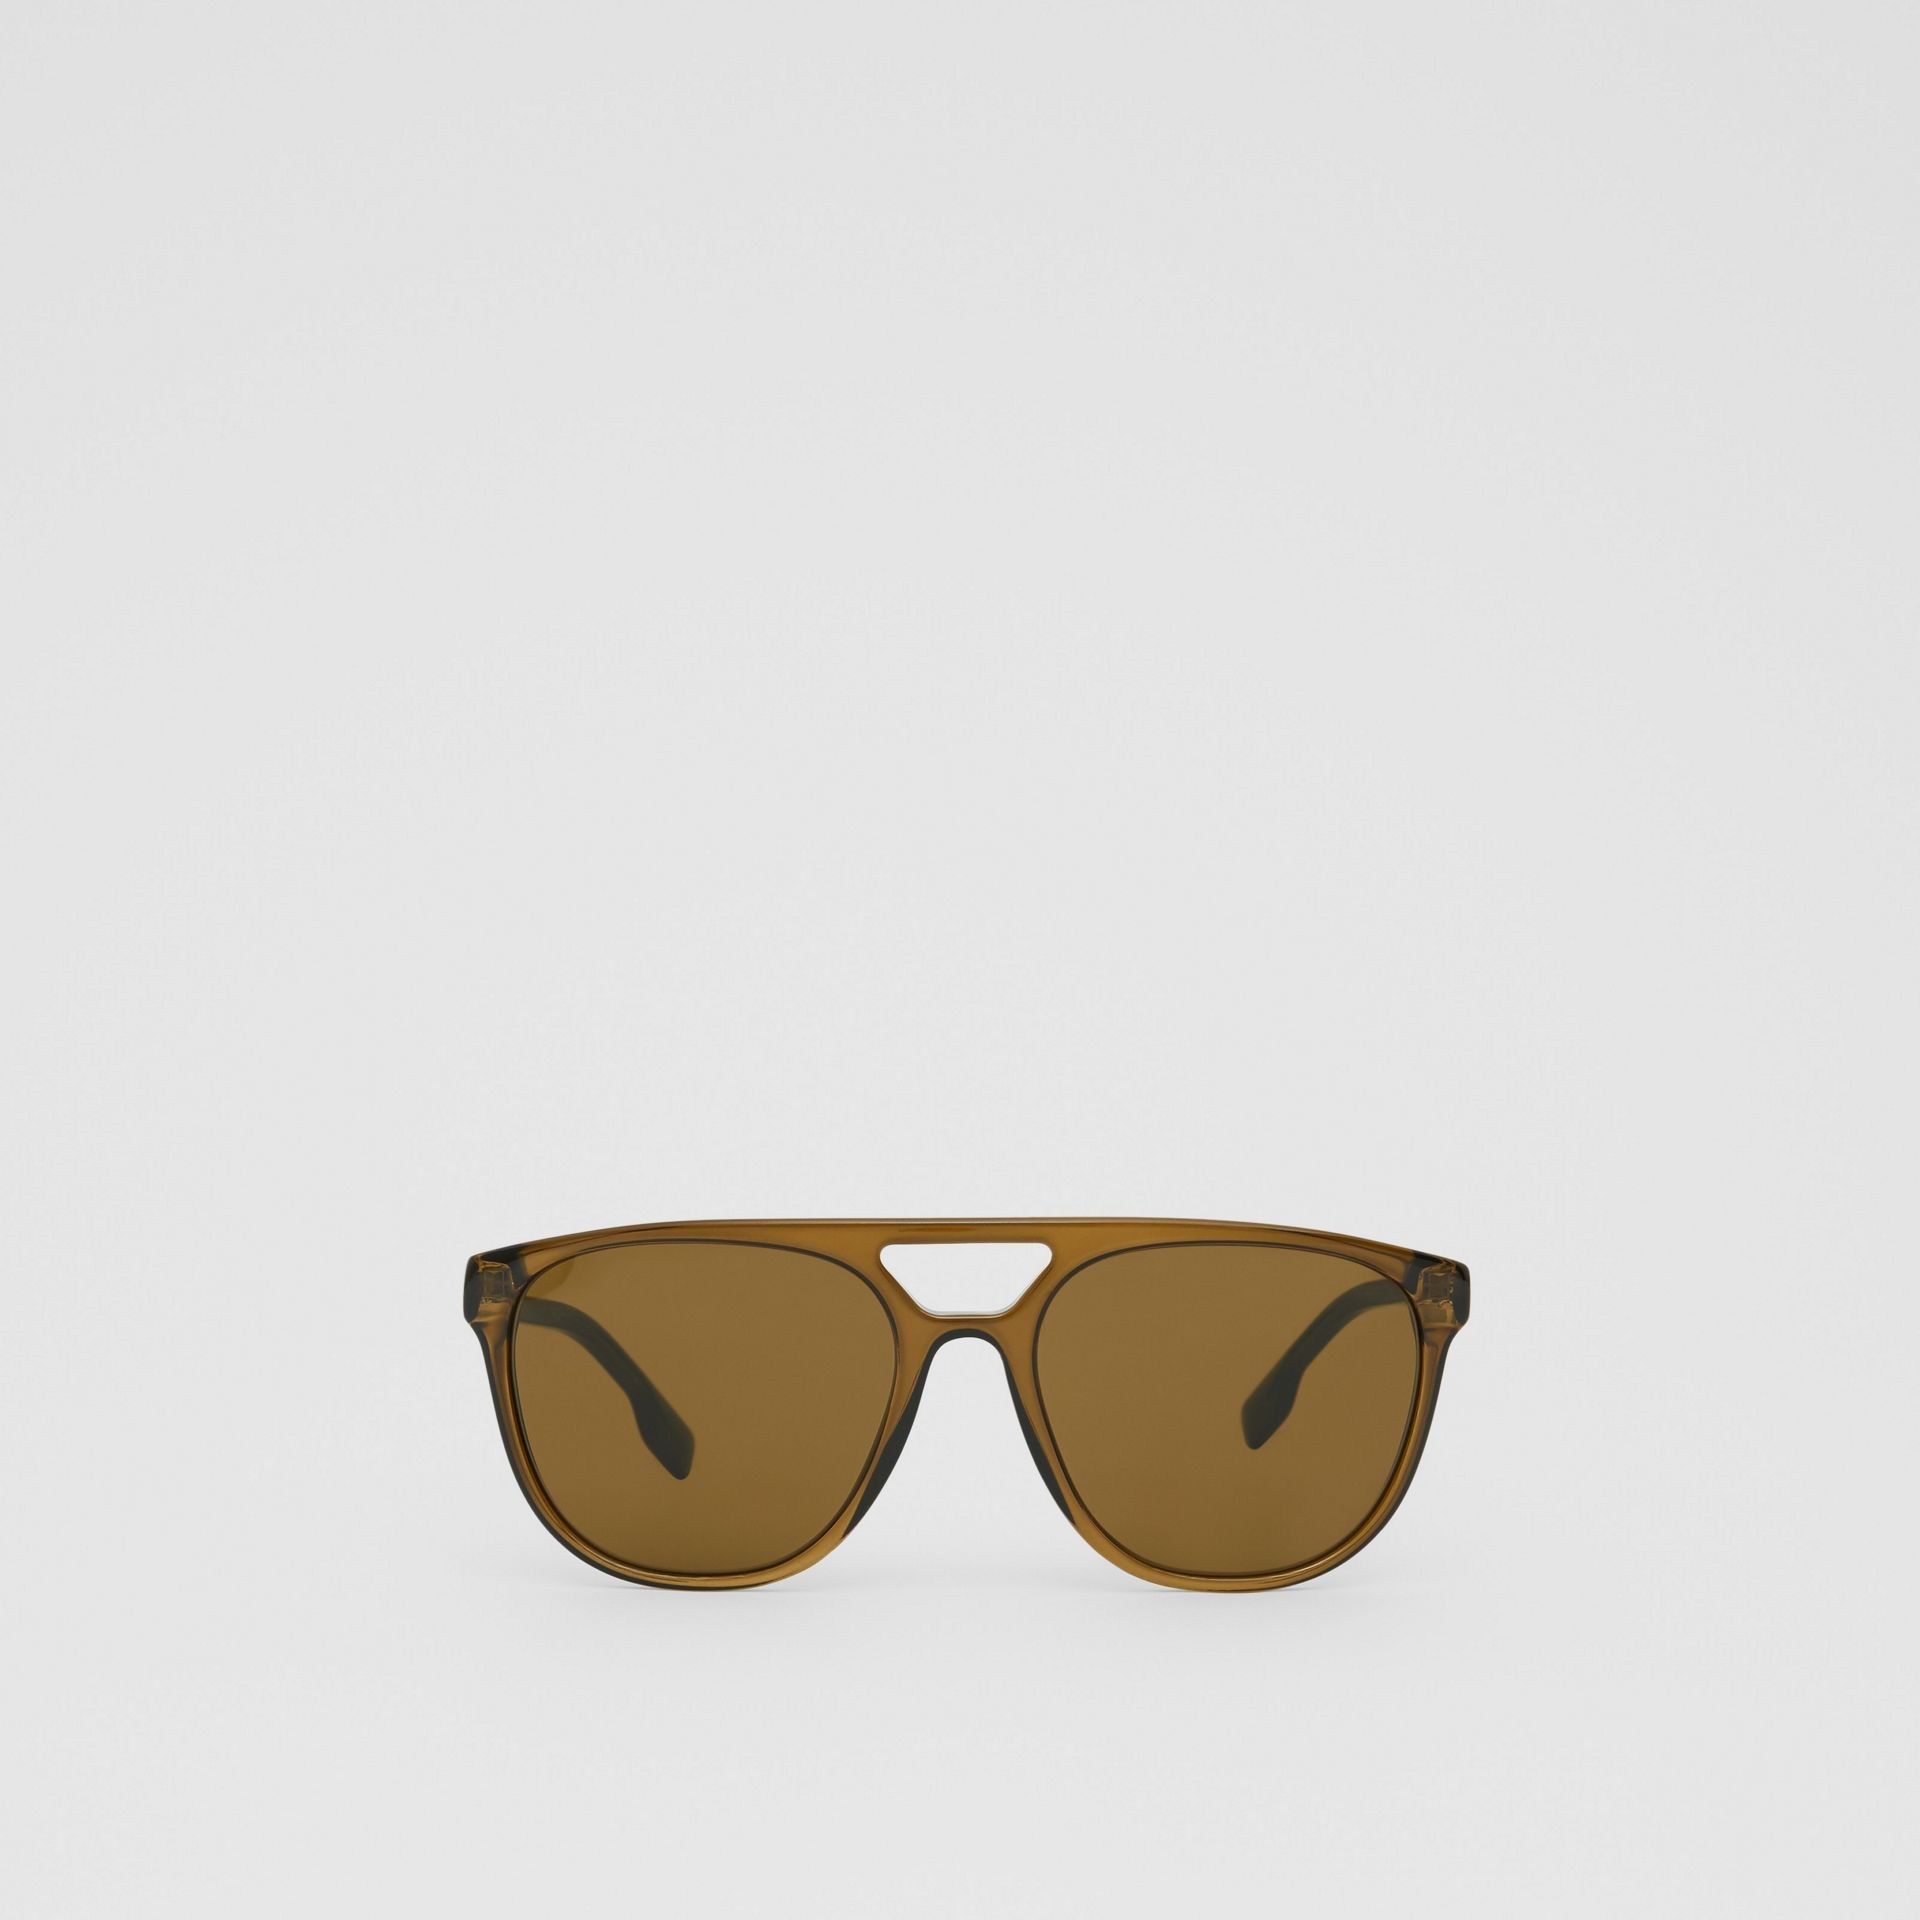 Navigator Sunglasses in Olive Green - Men | Burberry United Kingdom - gallery image 0